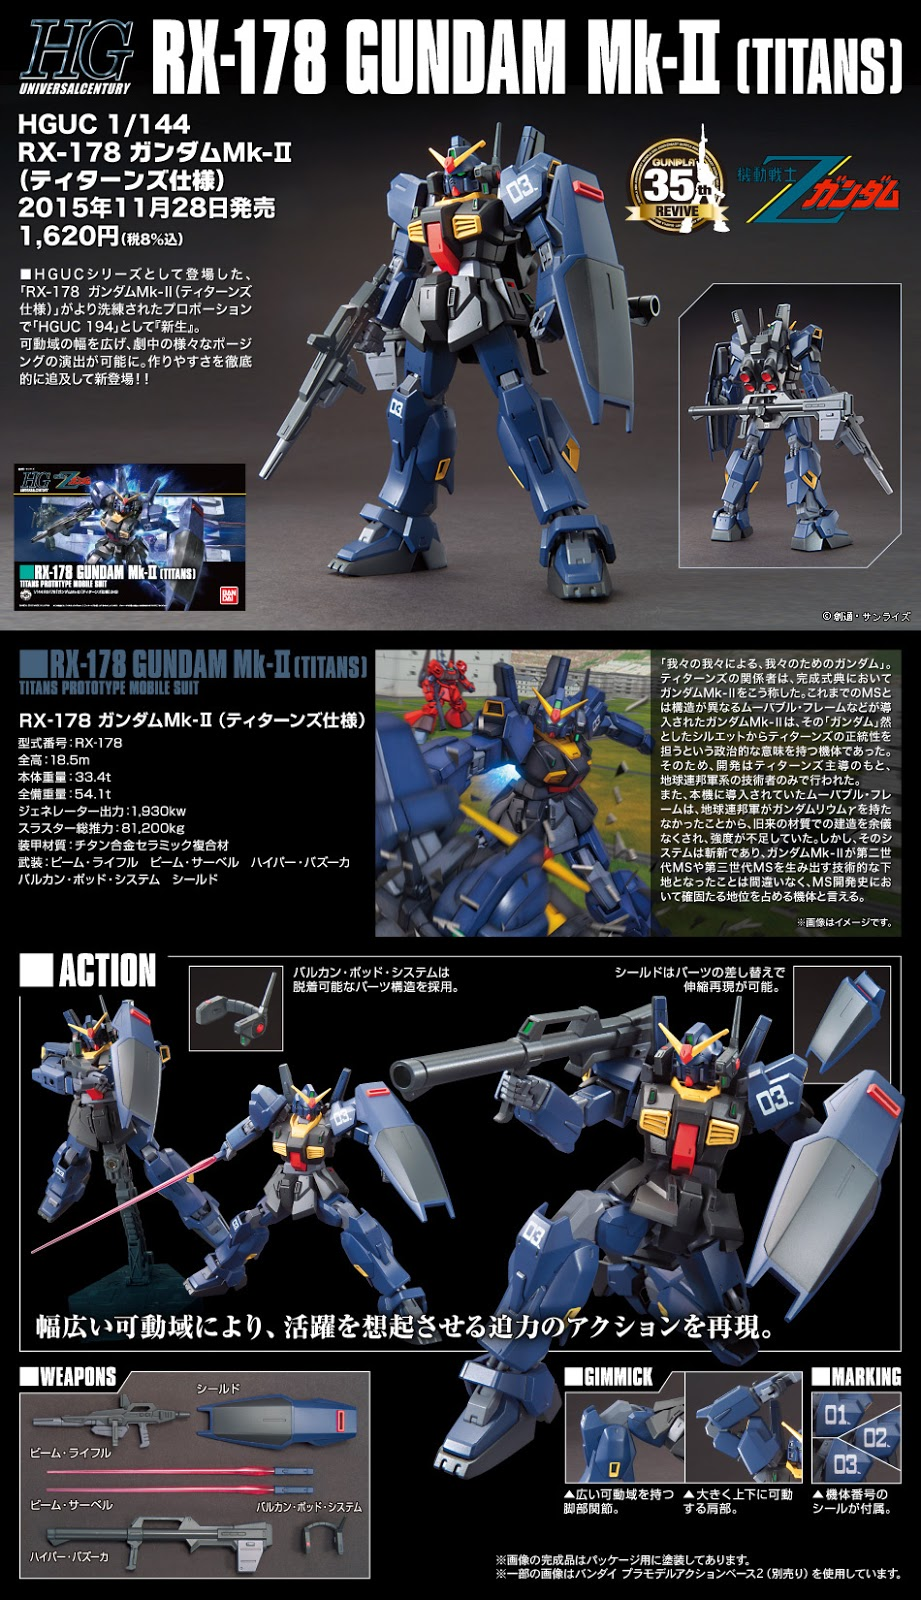 Image result for 1/144 HGUC RX-178 Gundam MK-II (TITANS) Revive